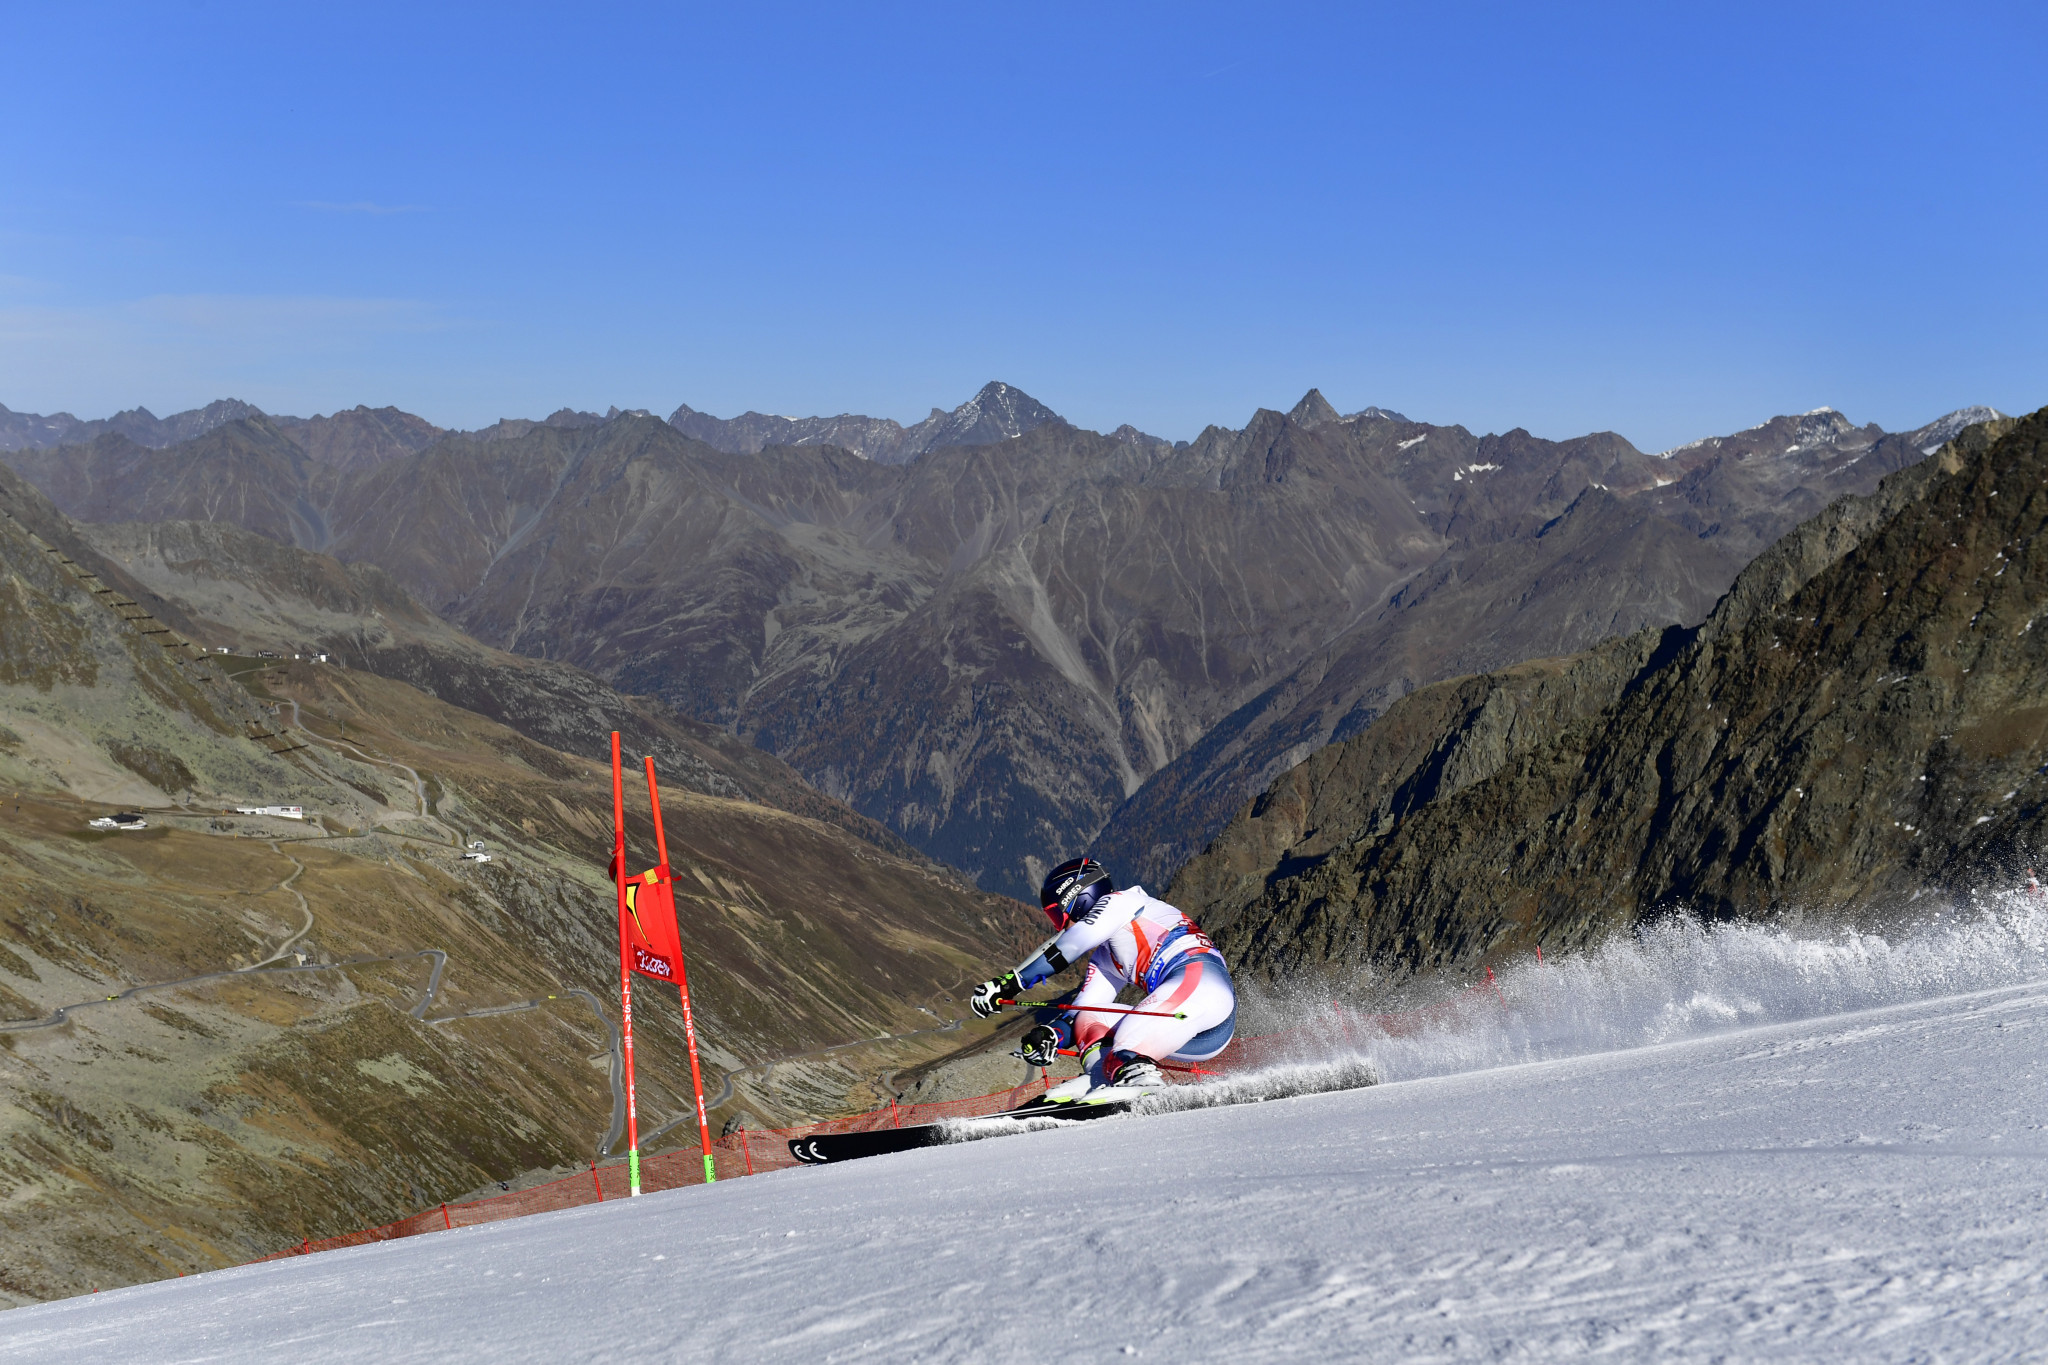 FIS Alpine Ski World Cup season to get underway in Sölden